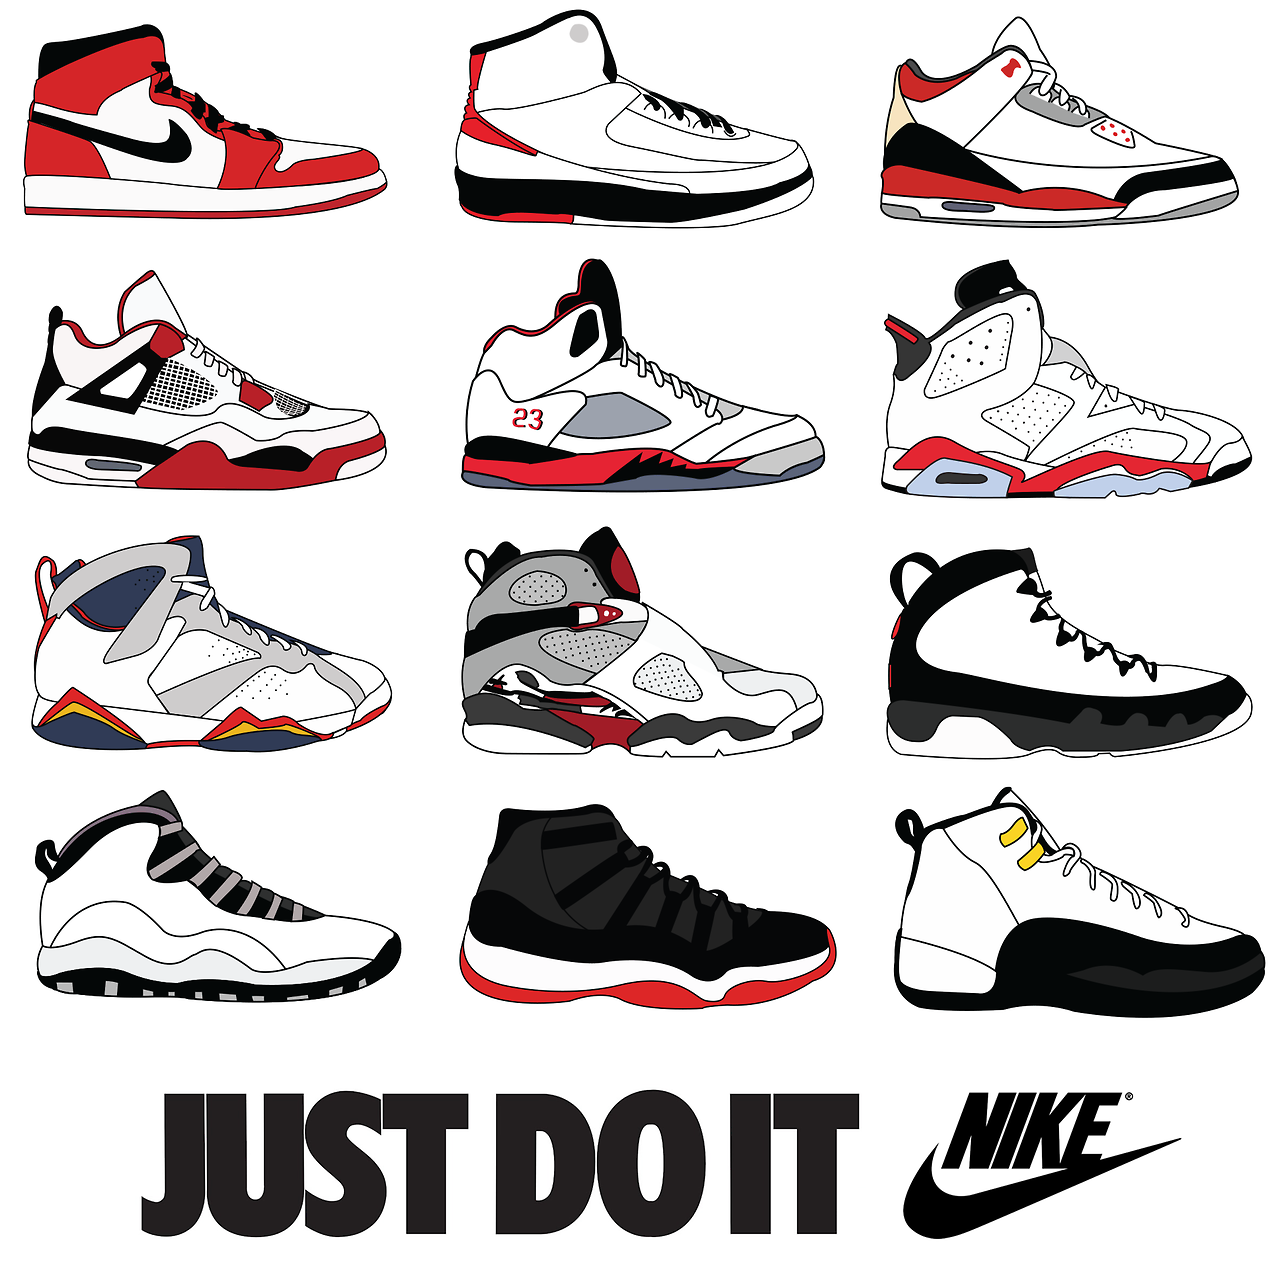 nike shoes just do it logo tumblr png 900802